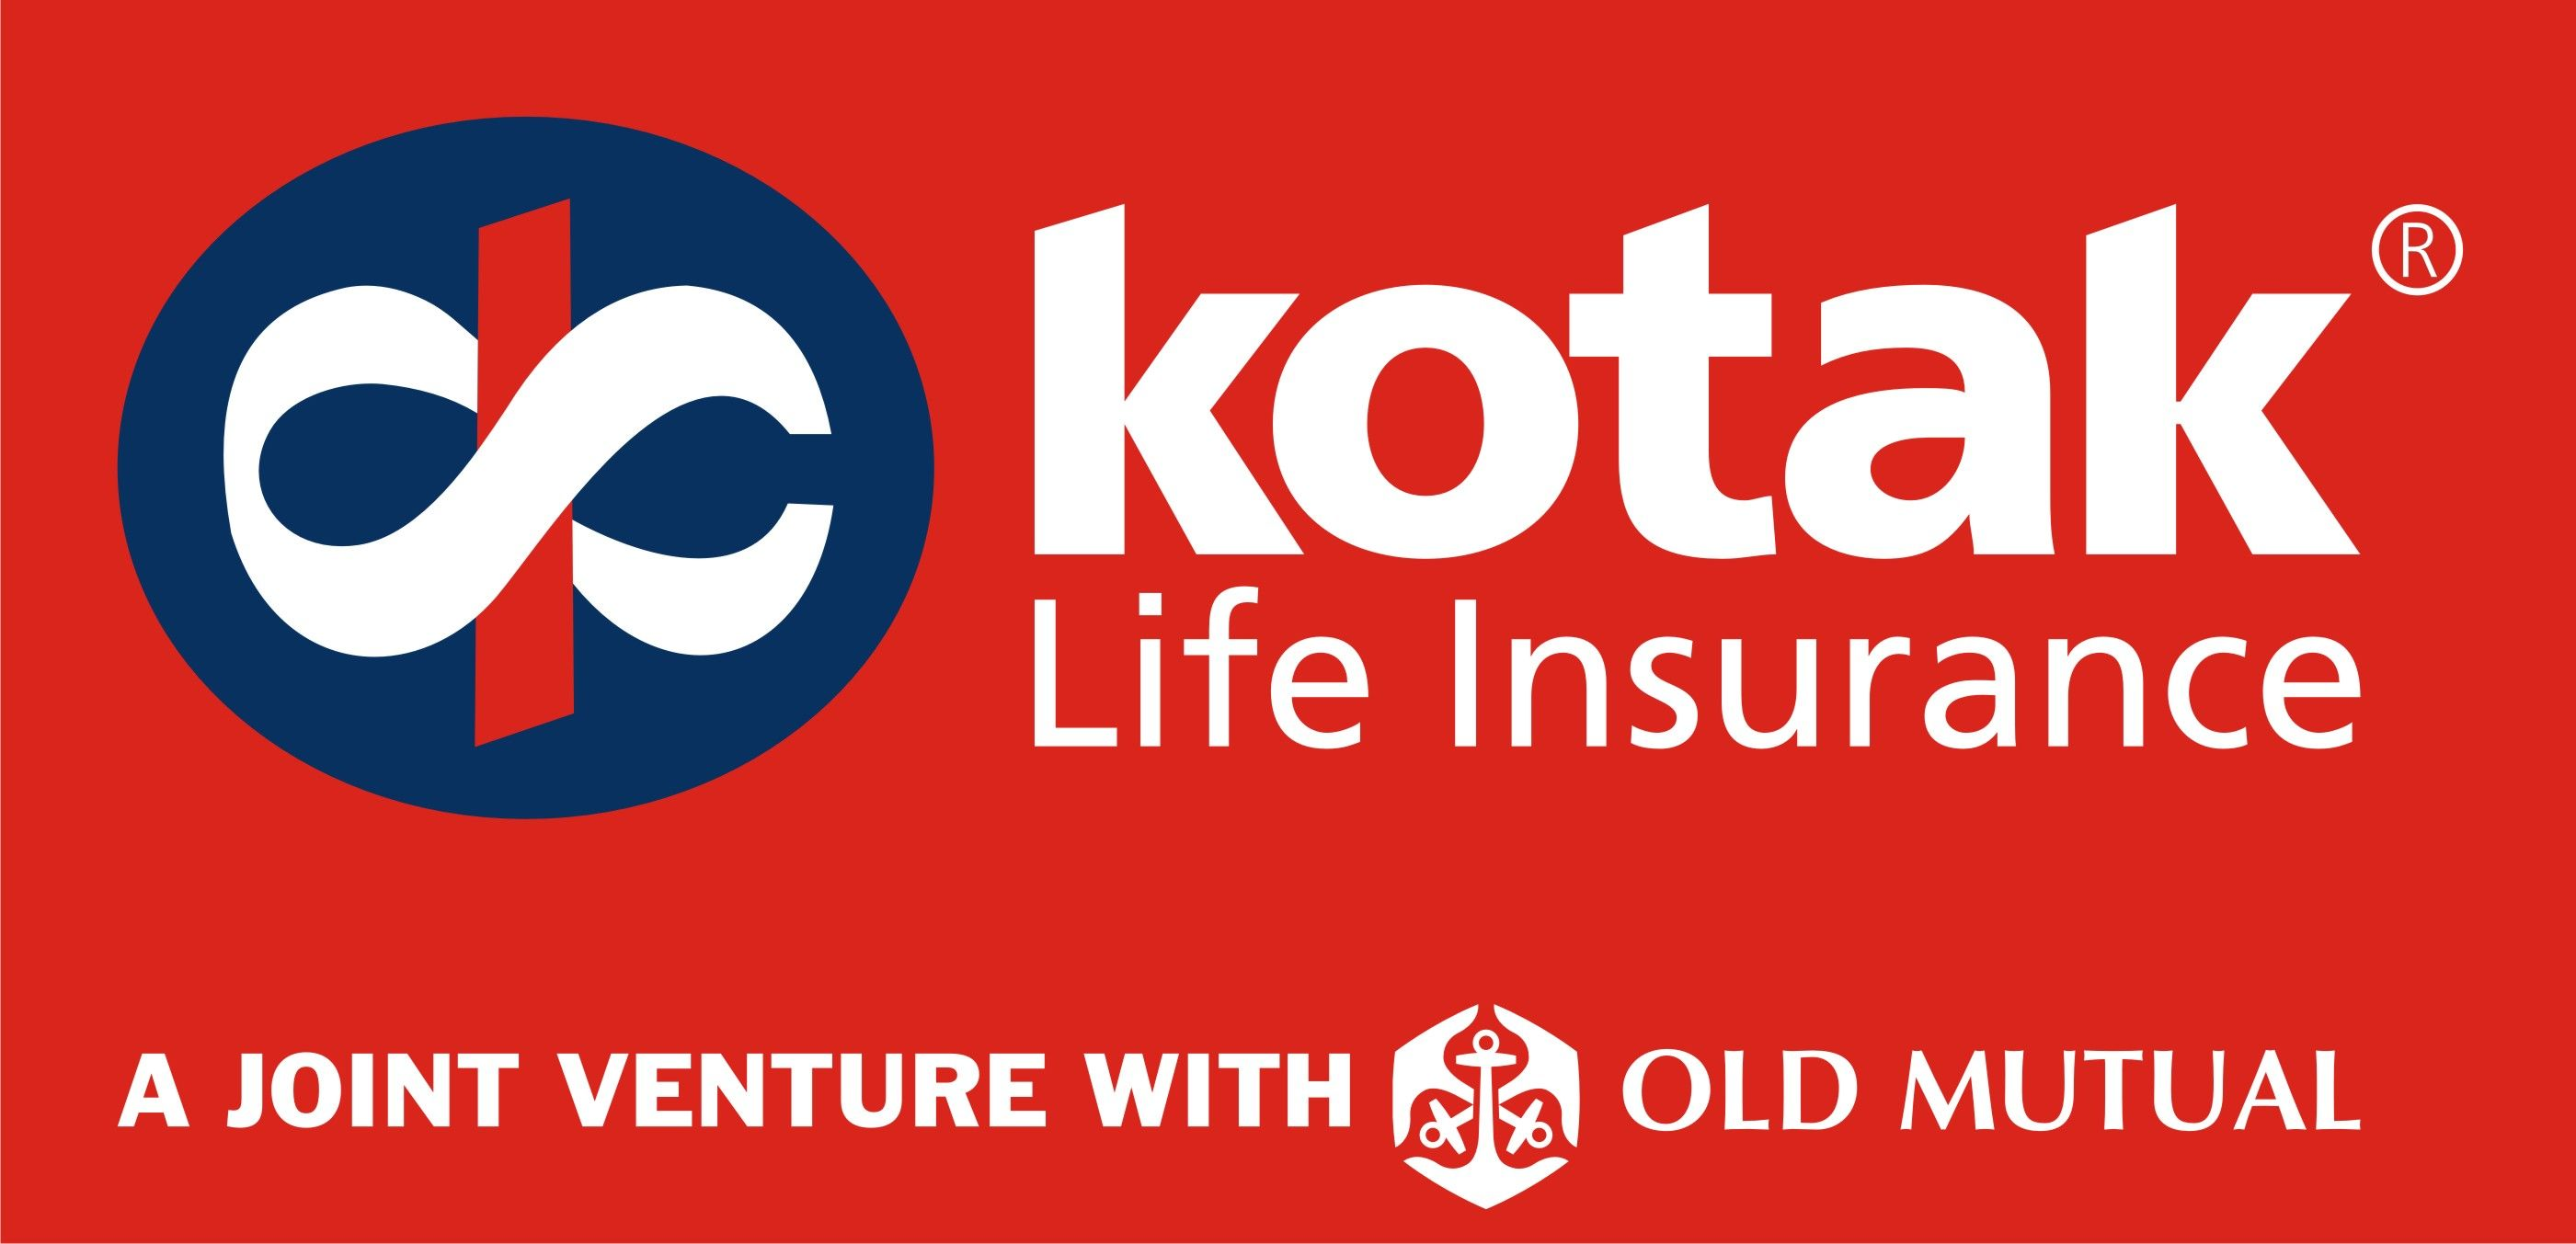 Kotak Mahindra Bank is one of its flagship businesses with